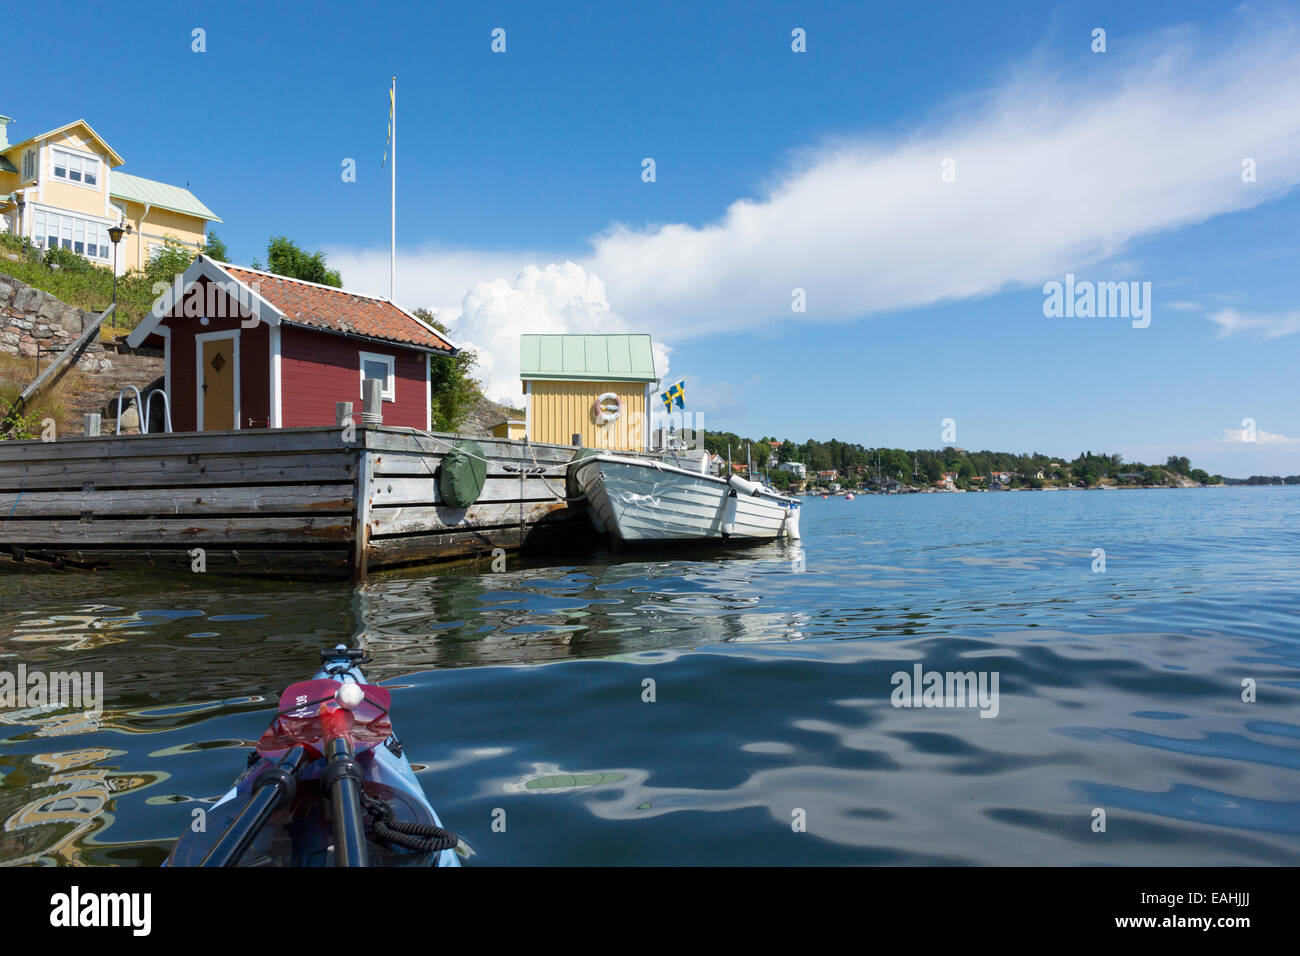 A boat house and recreational boat at Dalarö in the Stockholm archipelago viewed from a sea kayak. - Stock Image